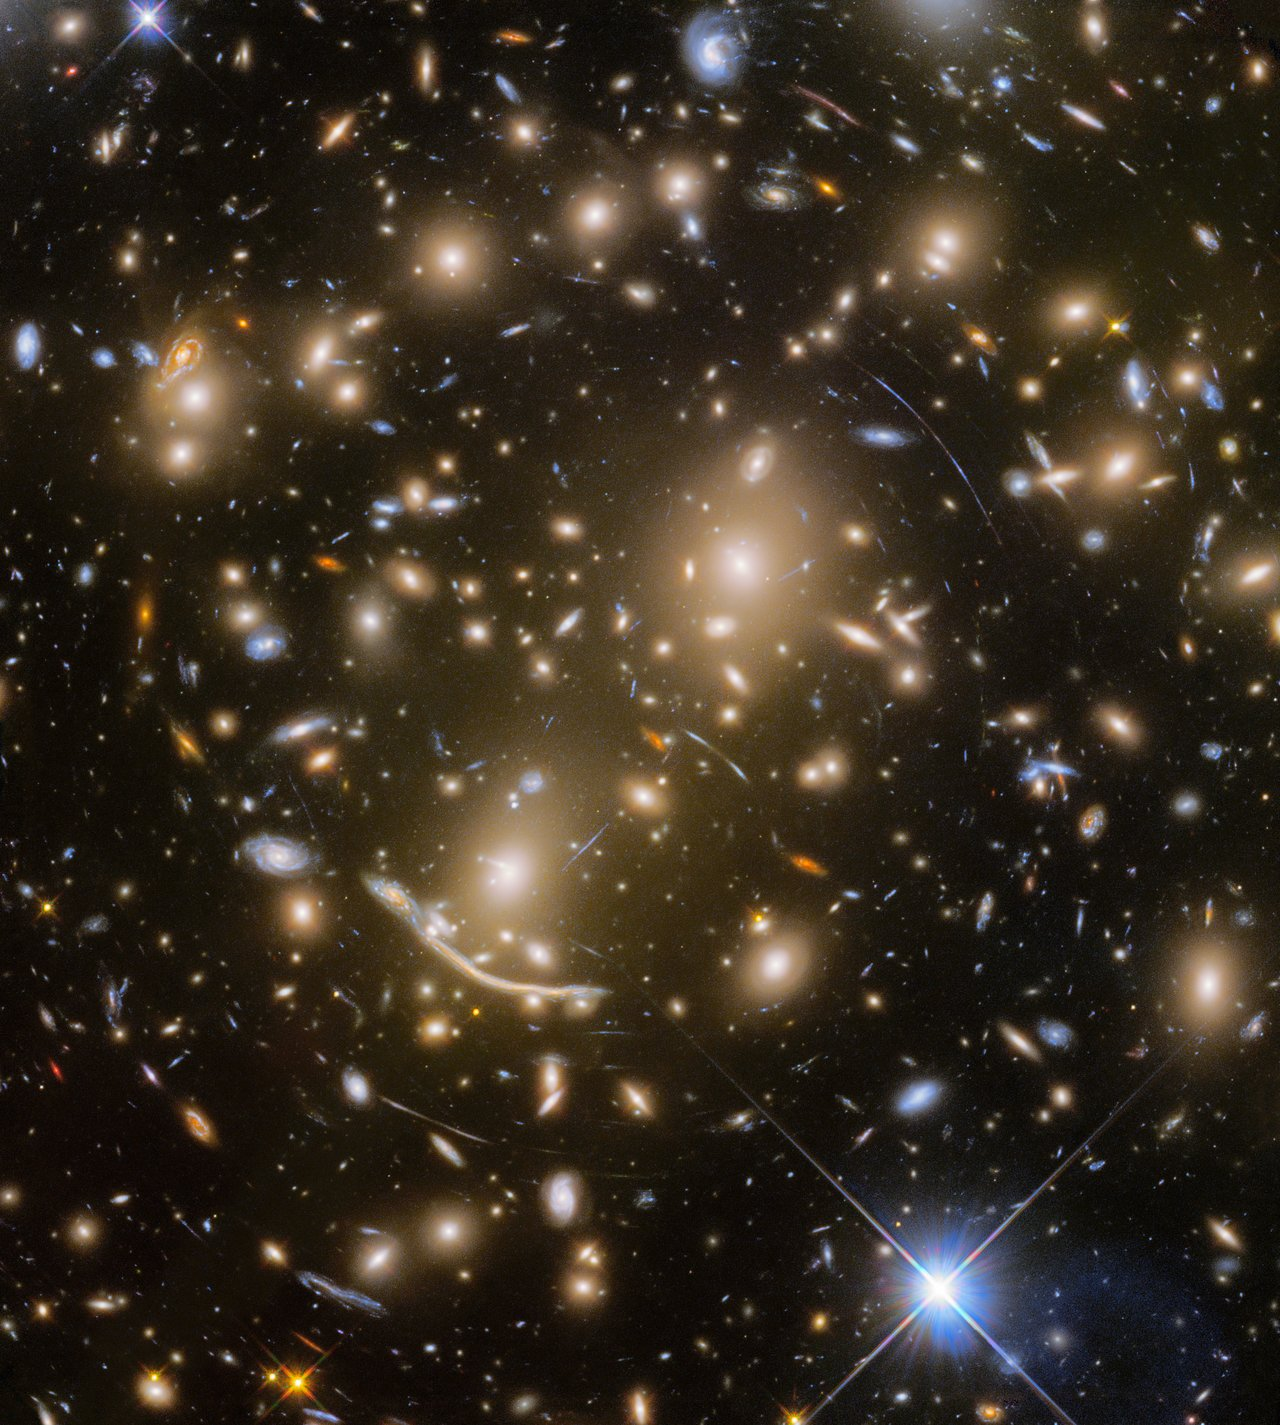 With the final observation of the distant galaxy cluster Abell 370 — some five billion light-years away — the Frontier Fields program came to an end. Abell 370 is one of the very first galaxy clusters in which astronomers observed the phenomenon of gravitational lensing, the warping of spacetime by the cluster's gravitational field that distorts the light from galaxies lying far behind it. This manifests as arcs and streaks in the picture, which are the stretched images of background galaxies.